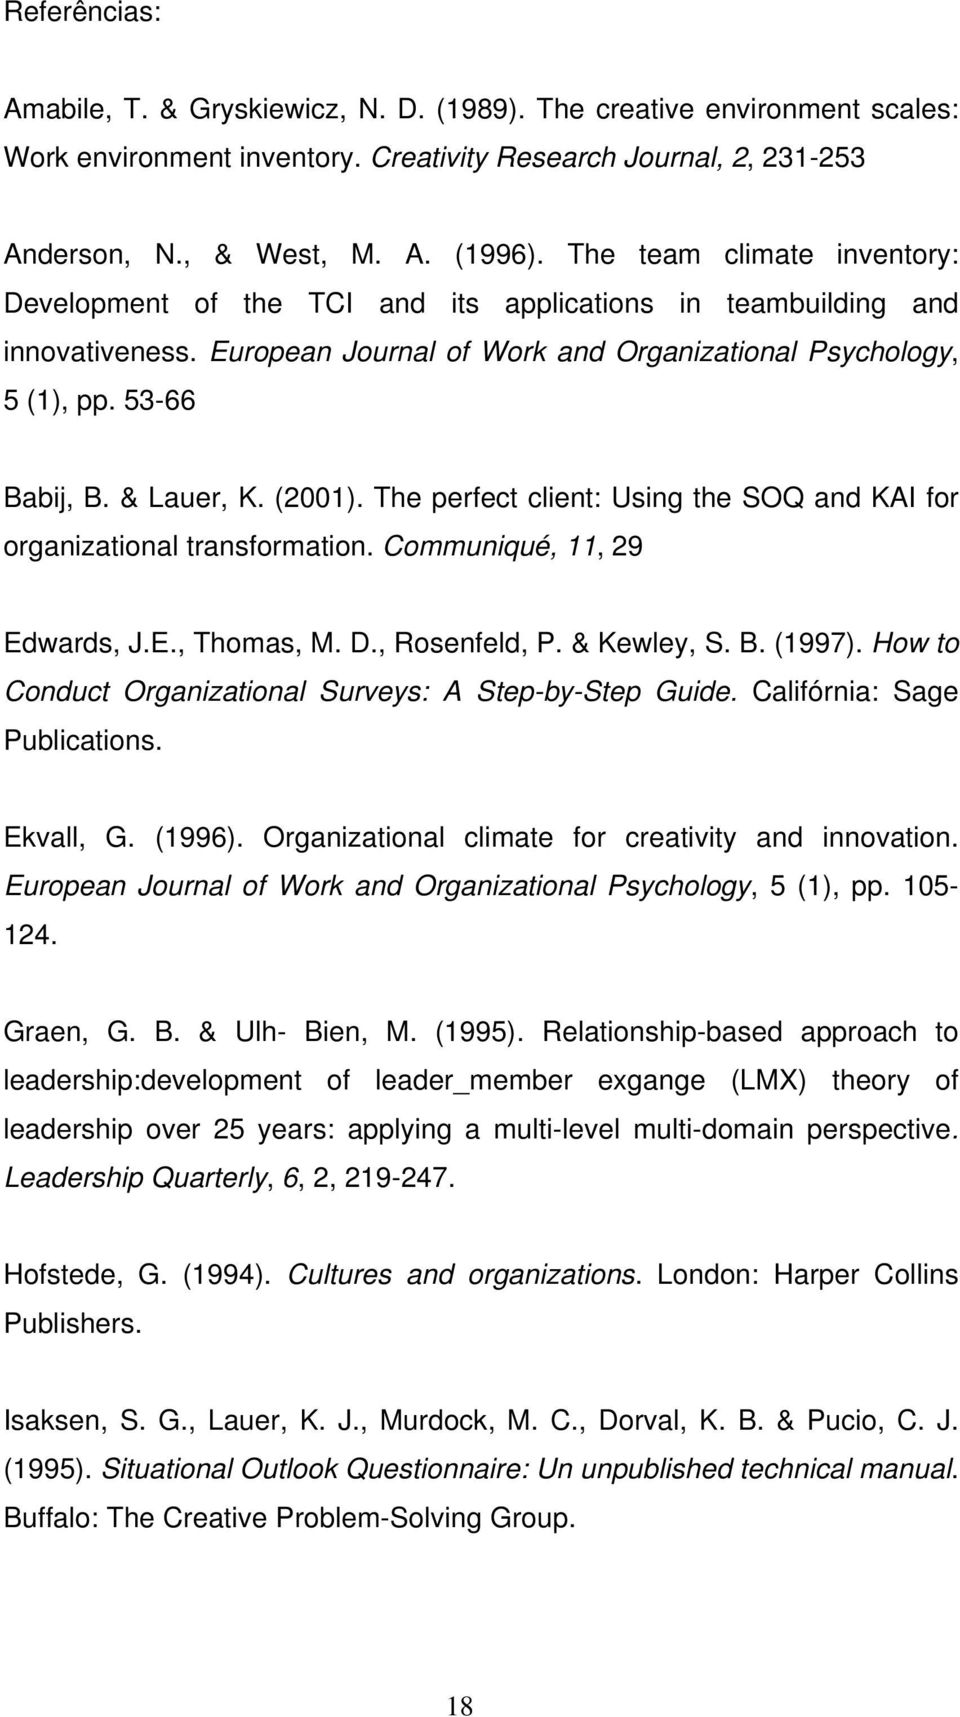 & Lauer, K. (2001). The perfect client: Using the SOQ and KAI for organizational transformation. Communiqué, 11, 29 Edwards, J.E., Thomas, M. D., Rosenfeld, P. & Kewley, S. B. (1997).